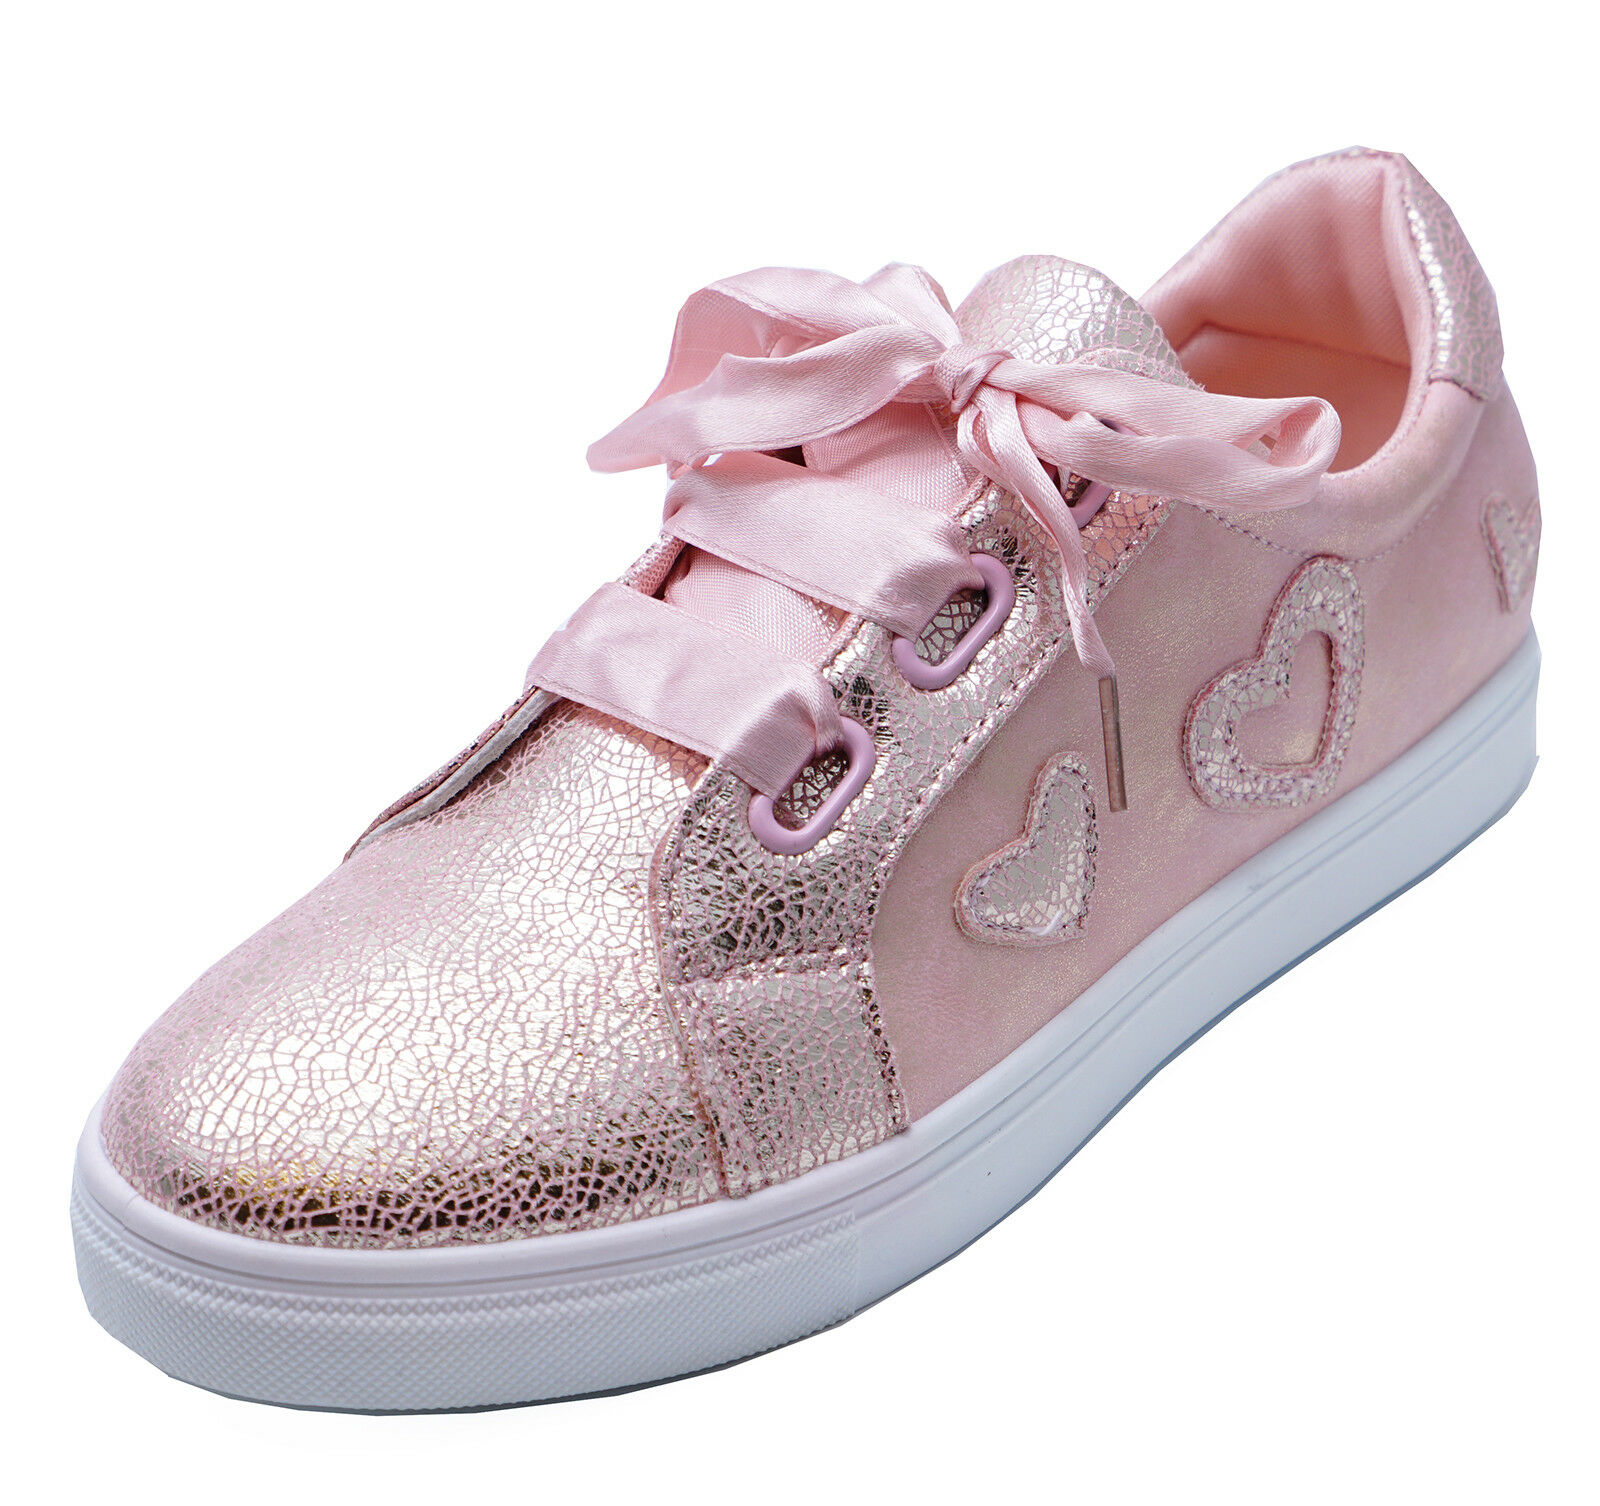 LADIES PINK LACE-UP RIBBON FLAT COMFY SKATE TRAINERS PLIMSOLL PUMPS SHOES UK 3-8